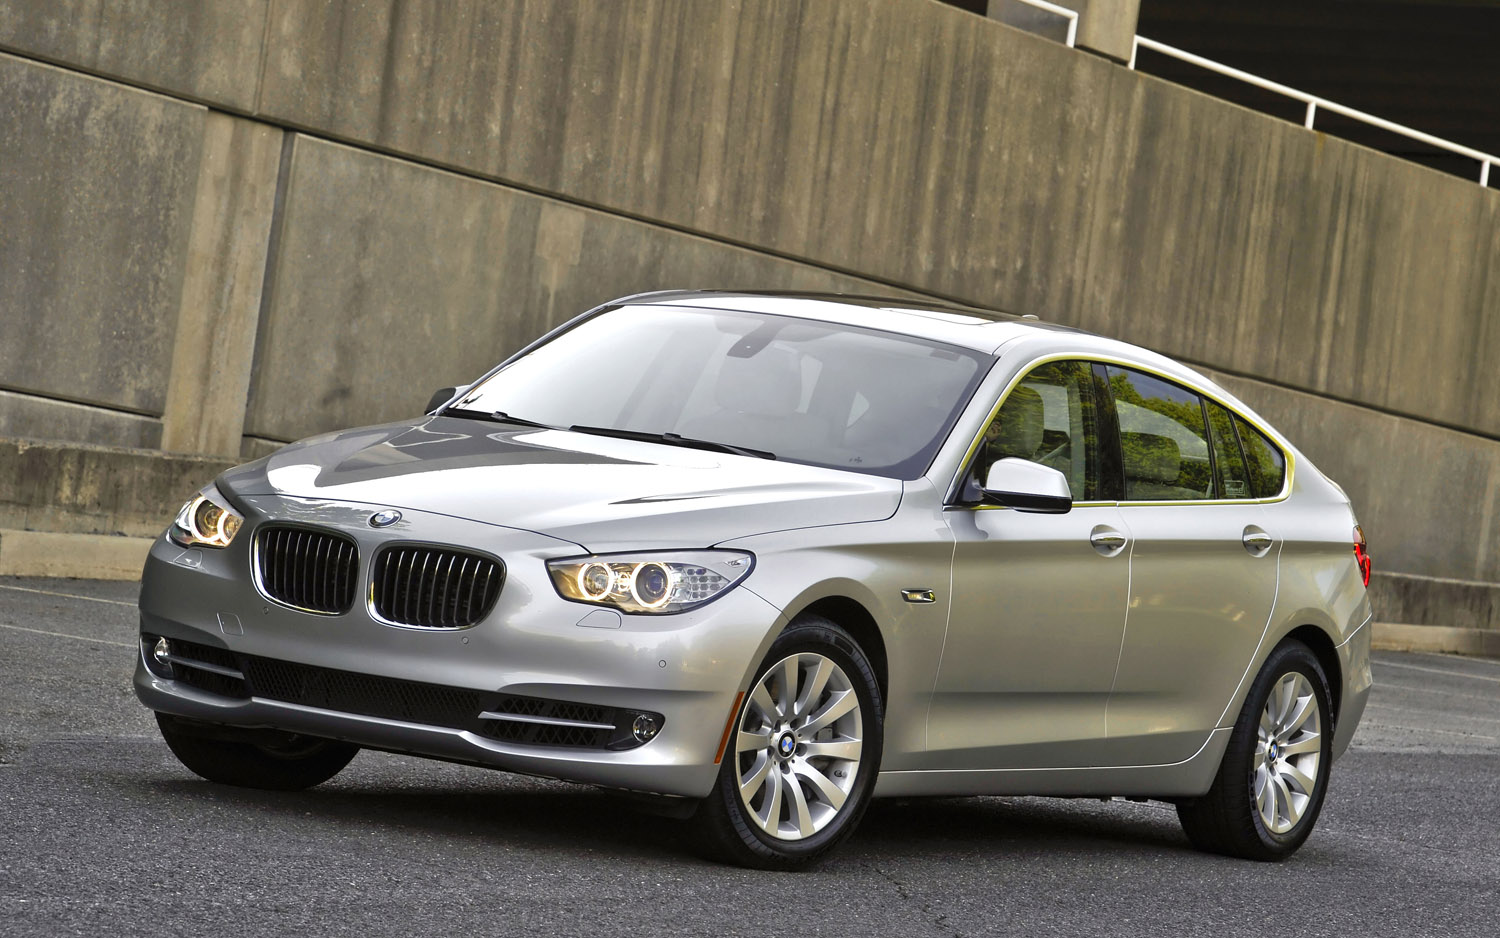 2013 BMW 5 Series GT Gets New Engine, Ups Power and MPG - Motor Trend